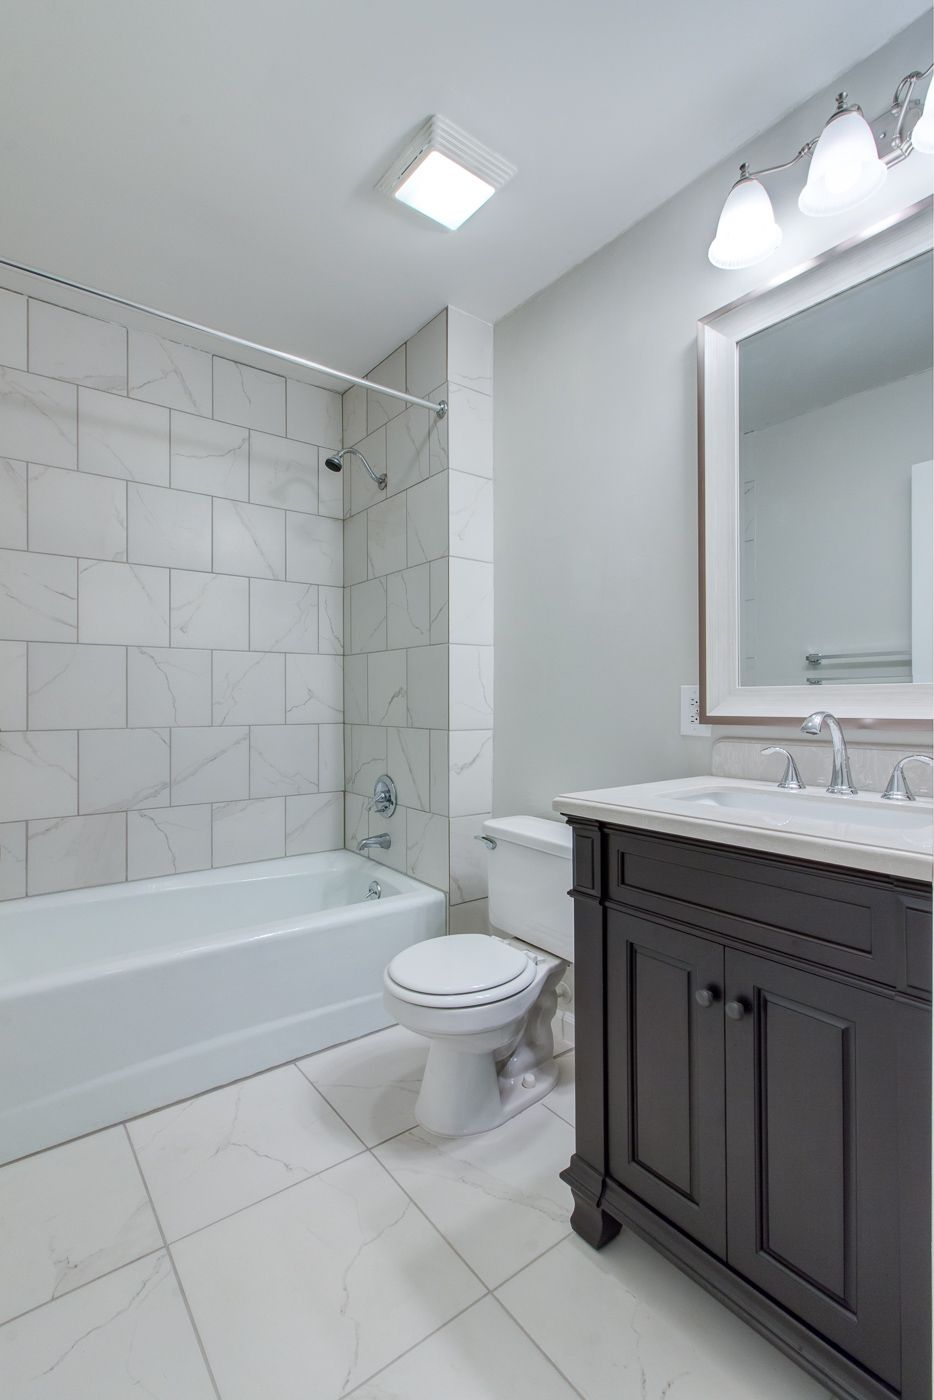 Bathroom remodel by Suzanne D of Raleigh NC Renovated a rental